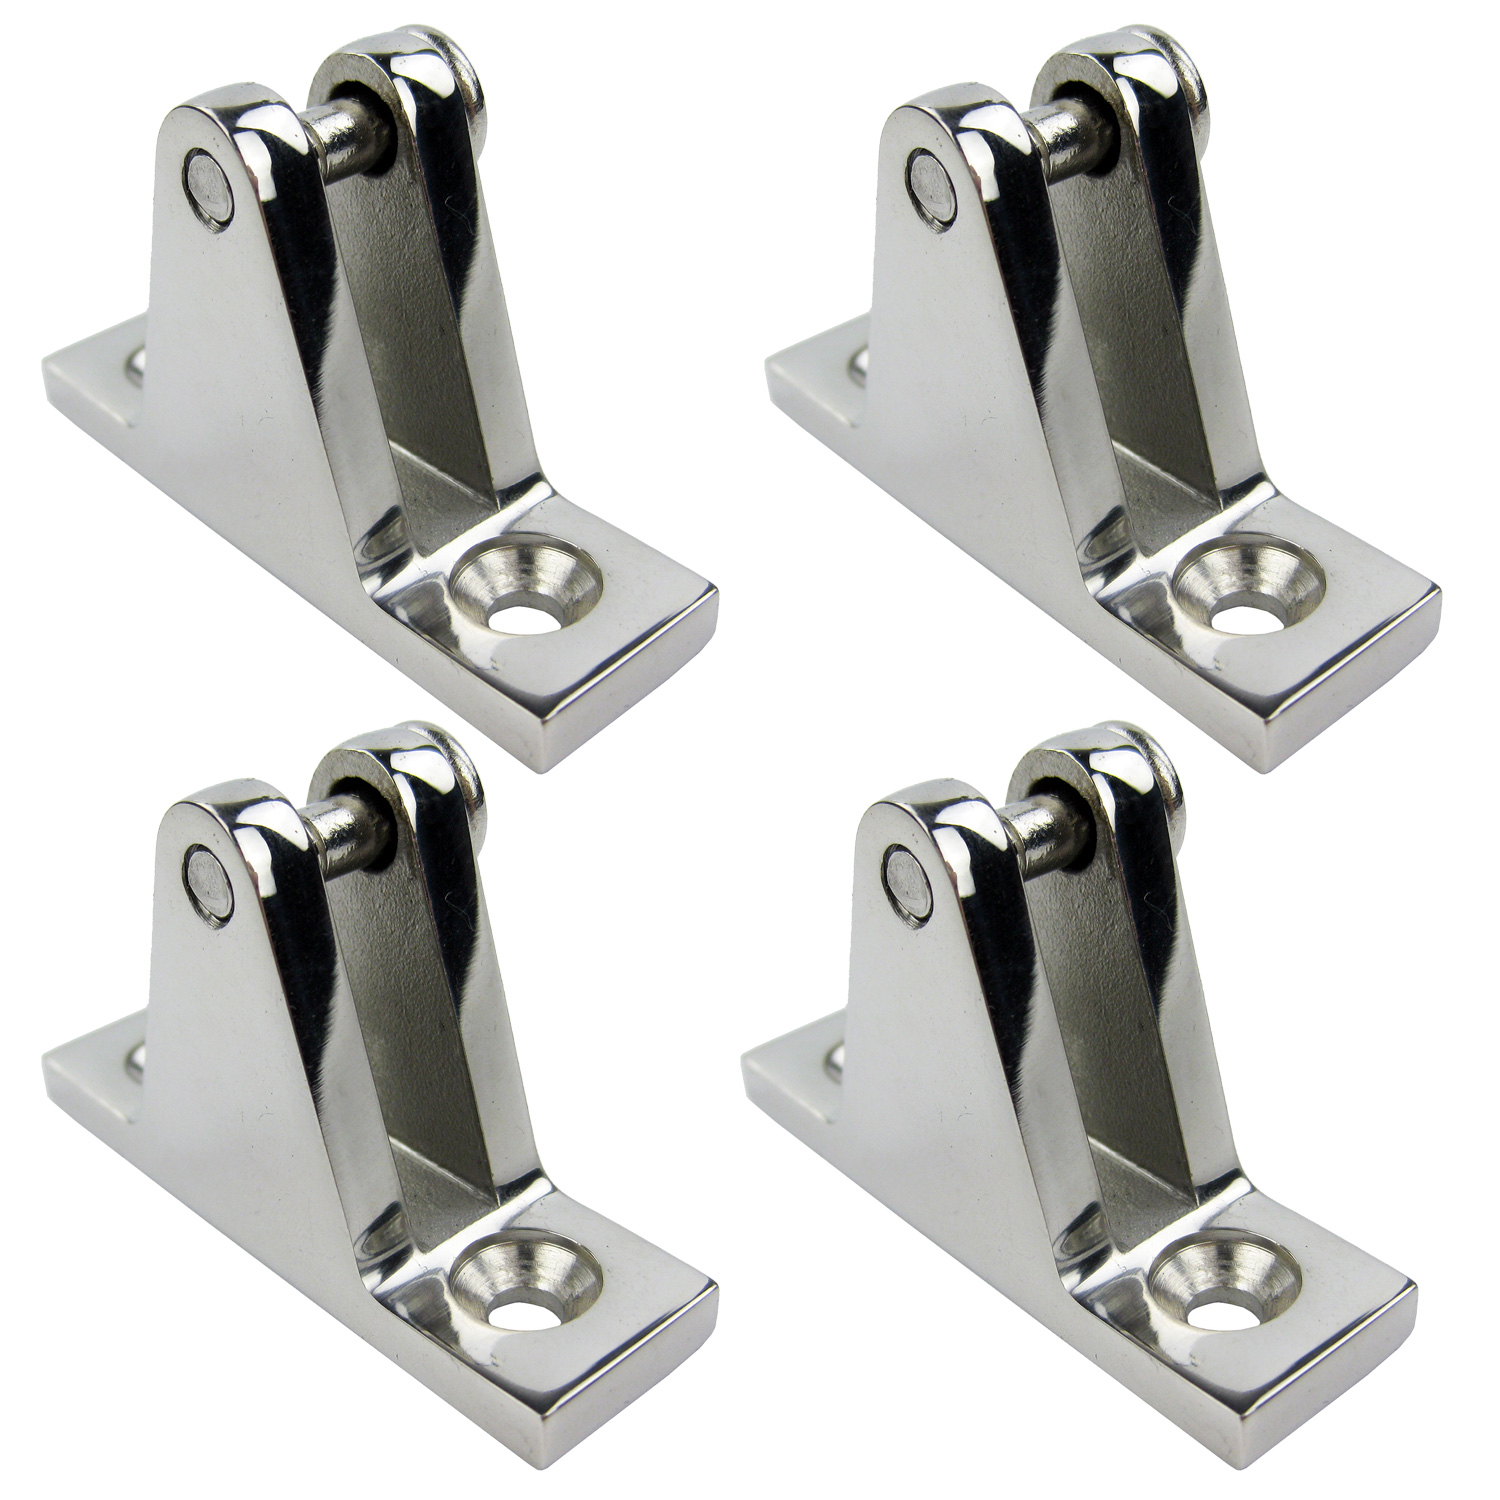 "Pack 4 Side Mount Boat Deck Hinge Bimini Top Canopy Fitting Base 2/"" x 7//8/"""